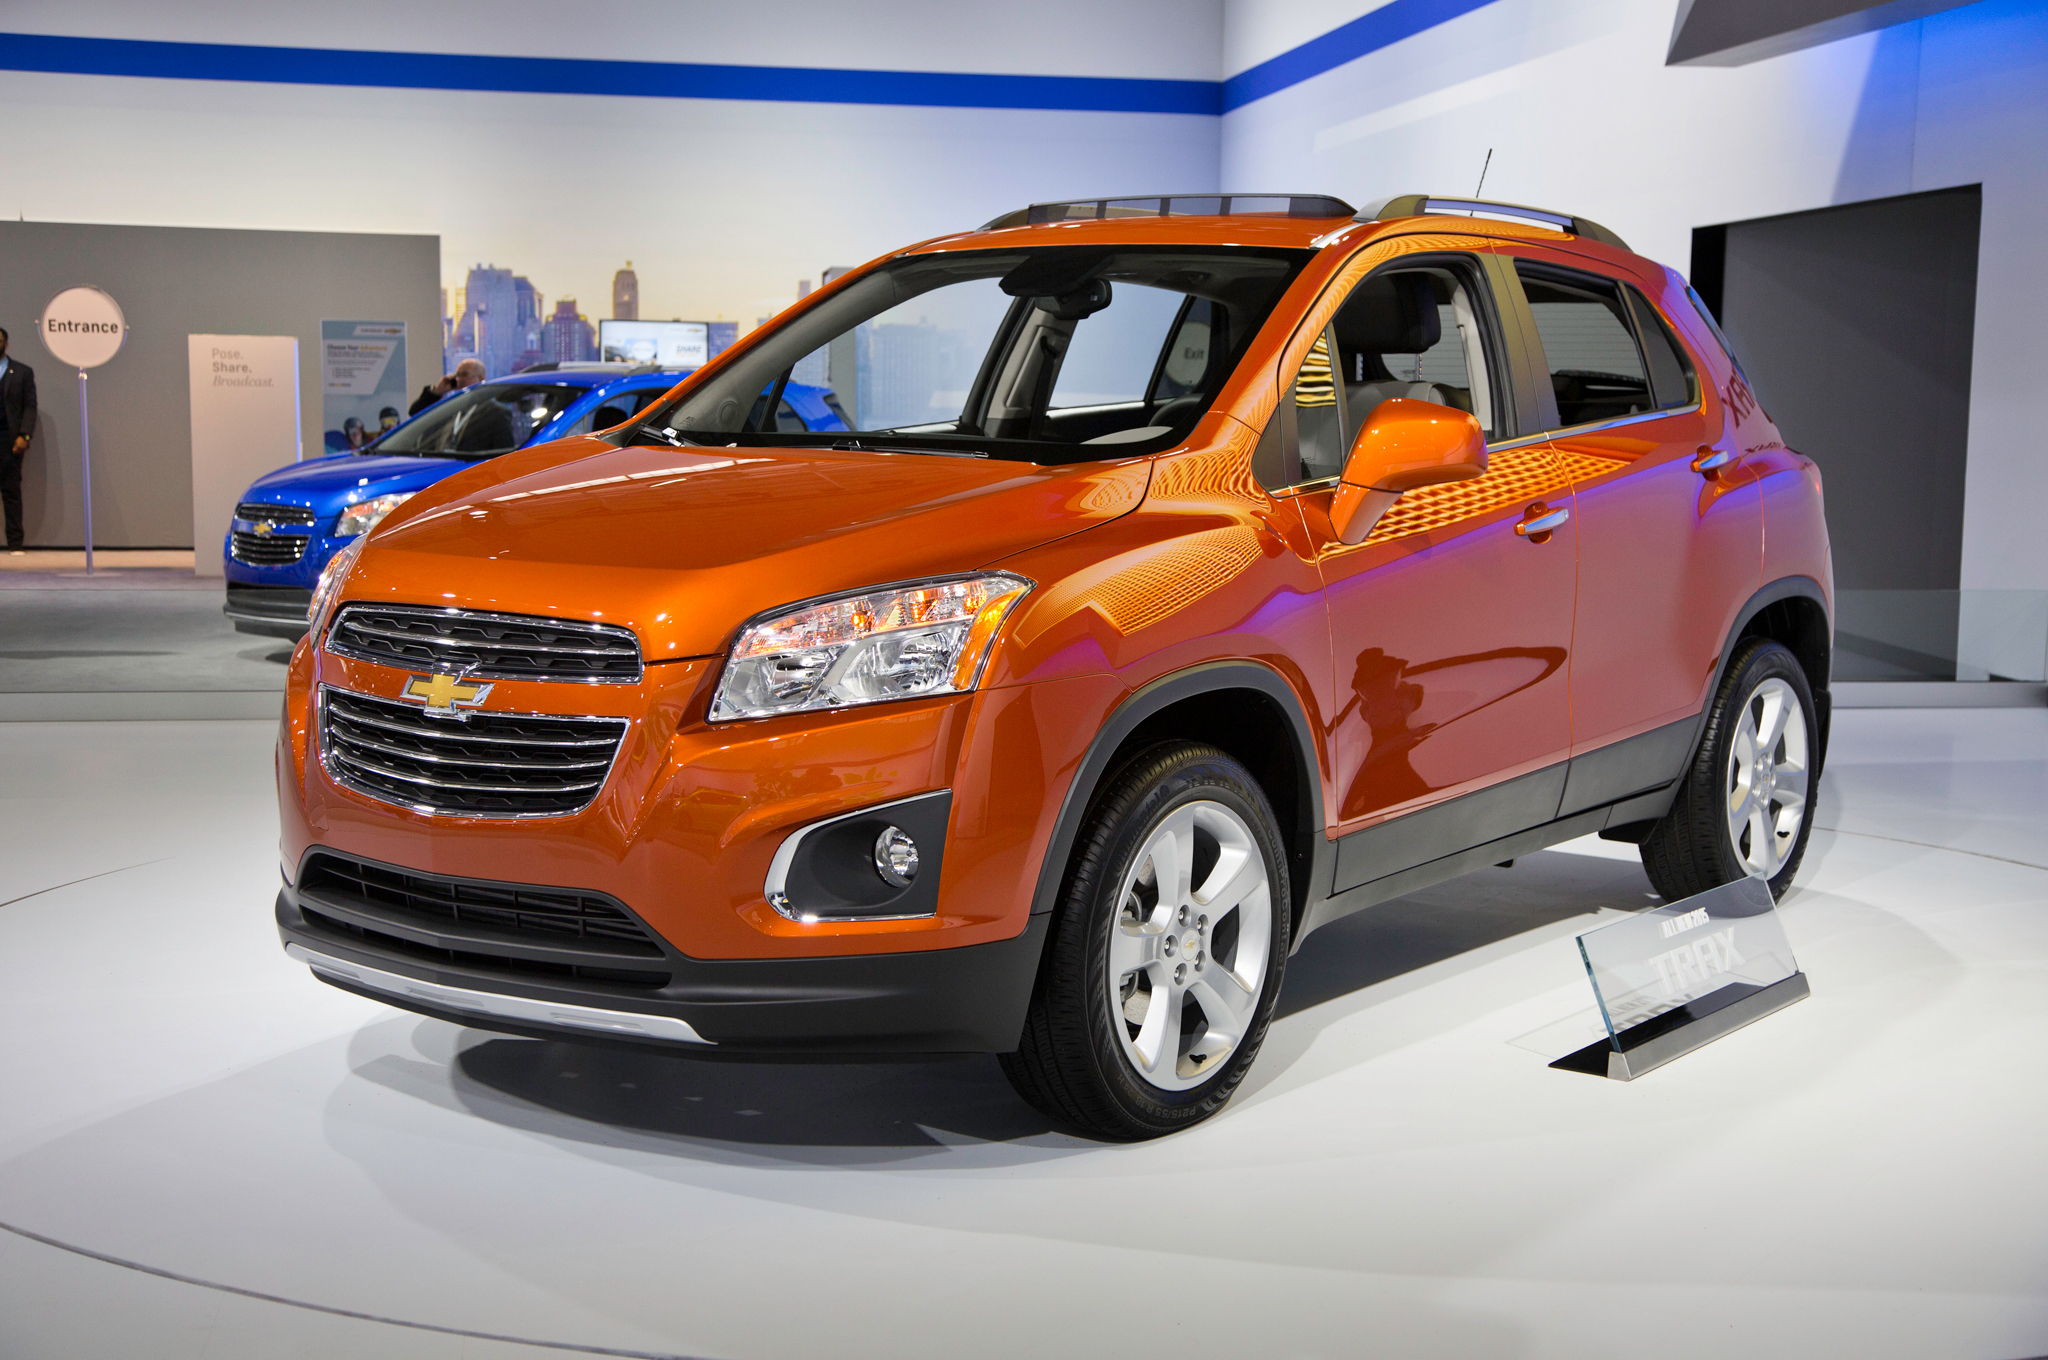 chevrolet trax images #3